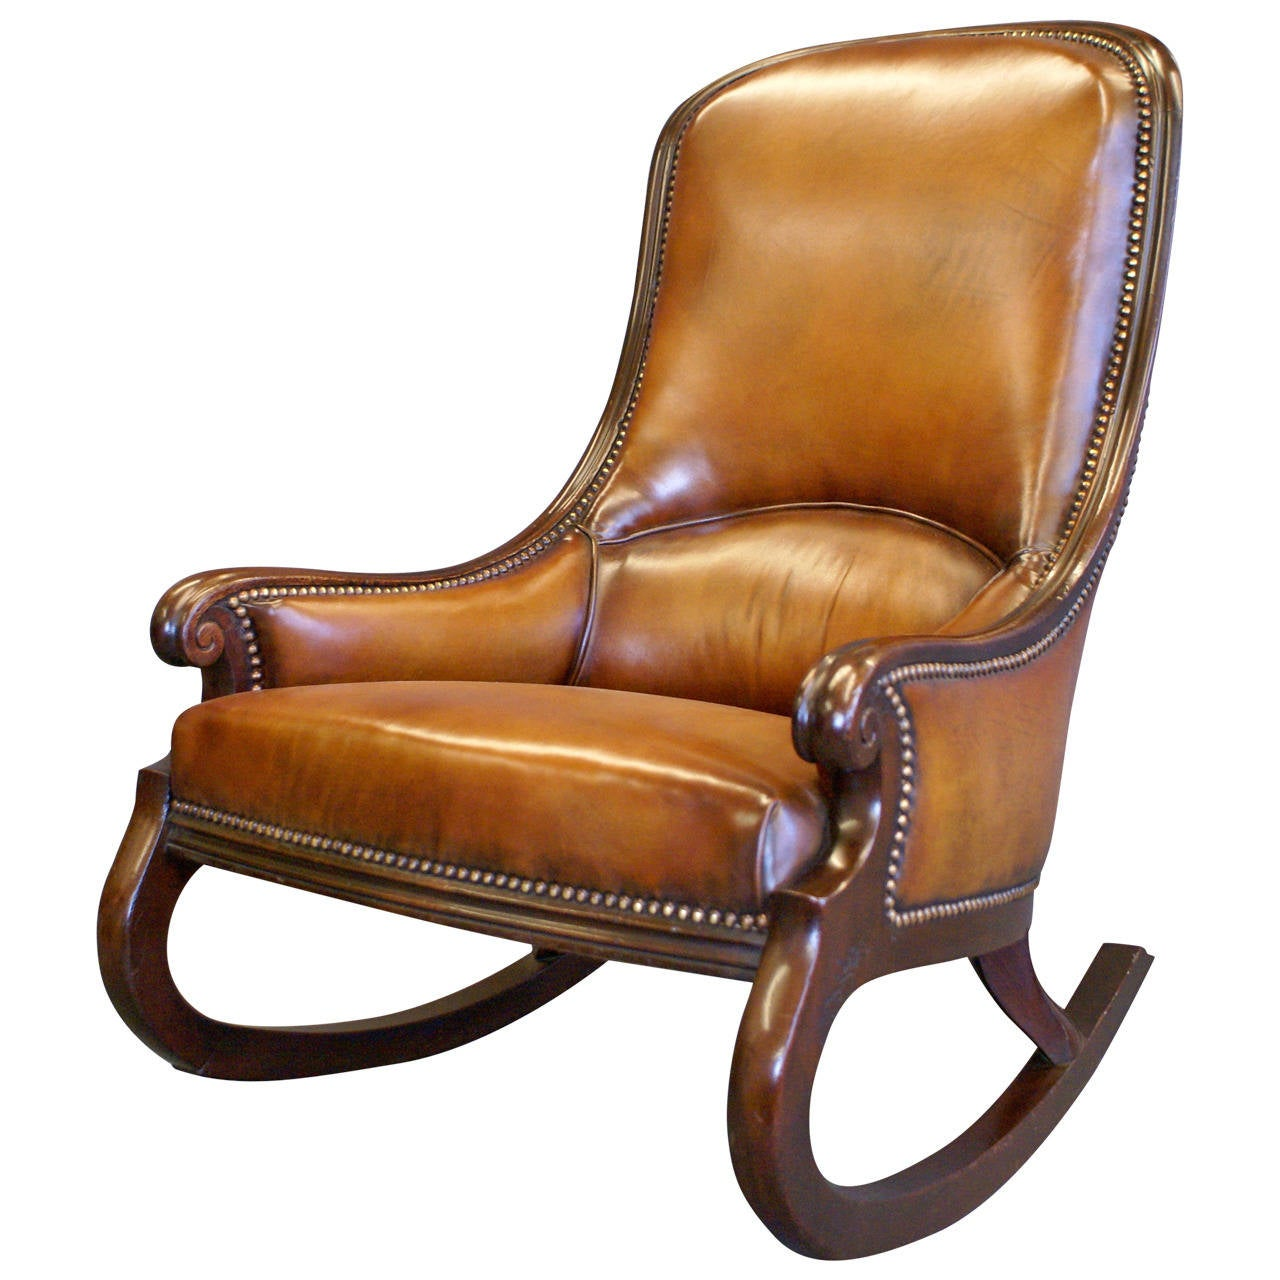 antique victorian folding rocking chair swivel manufacturers very rare mahogany at 1stdibs